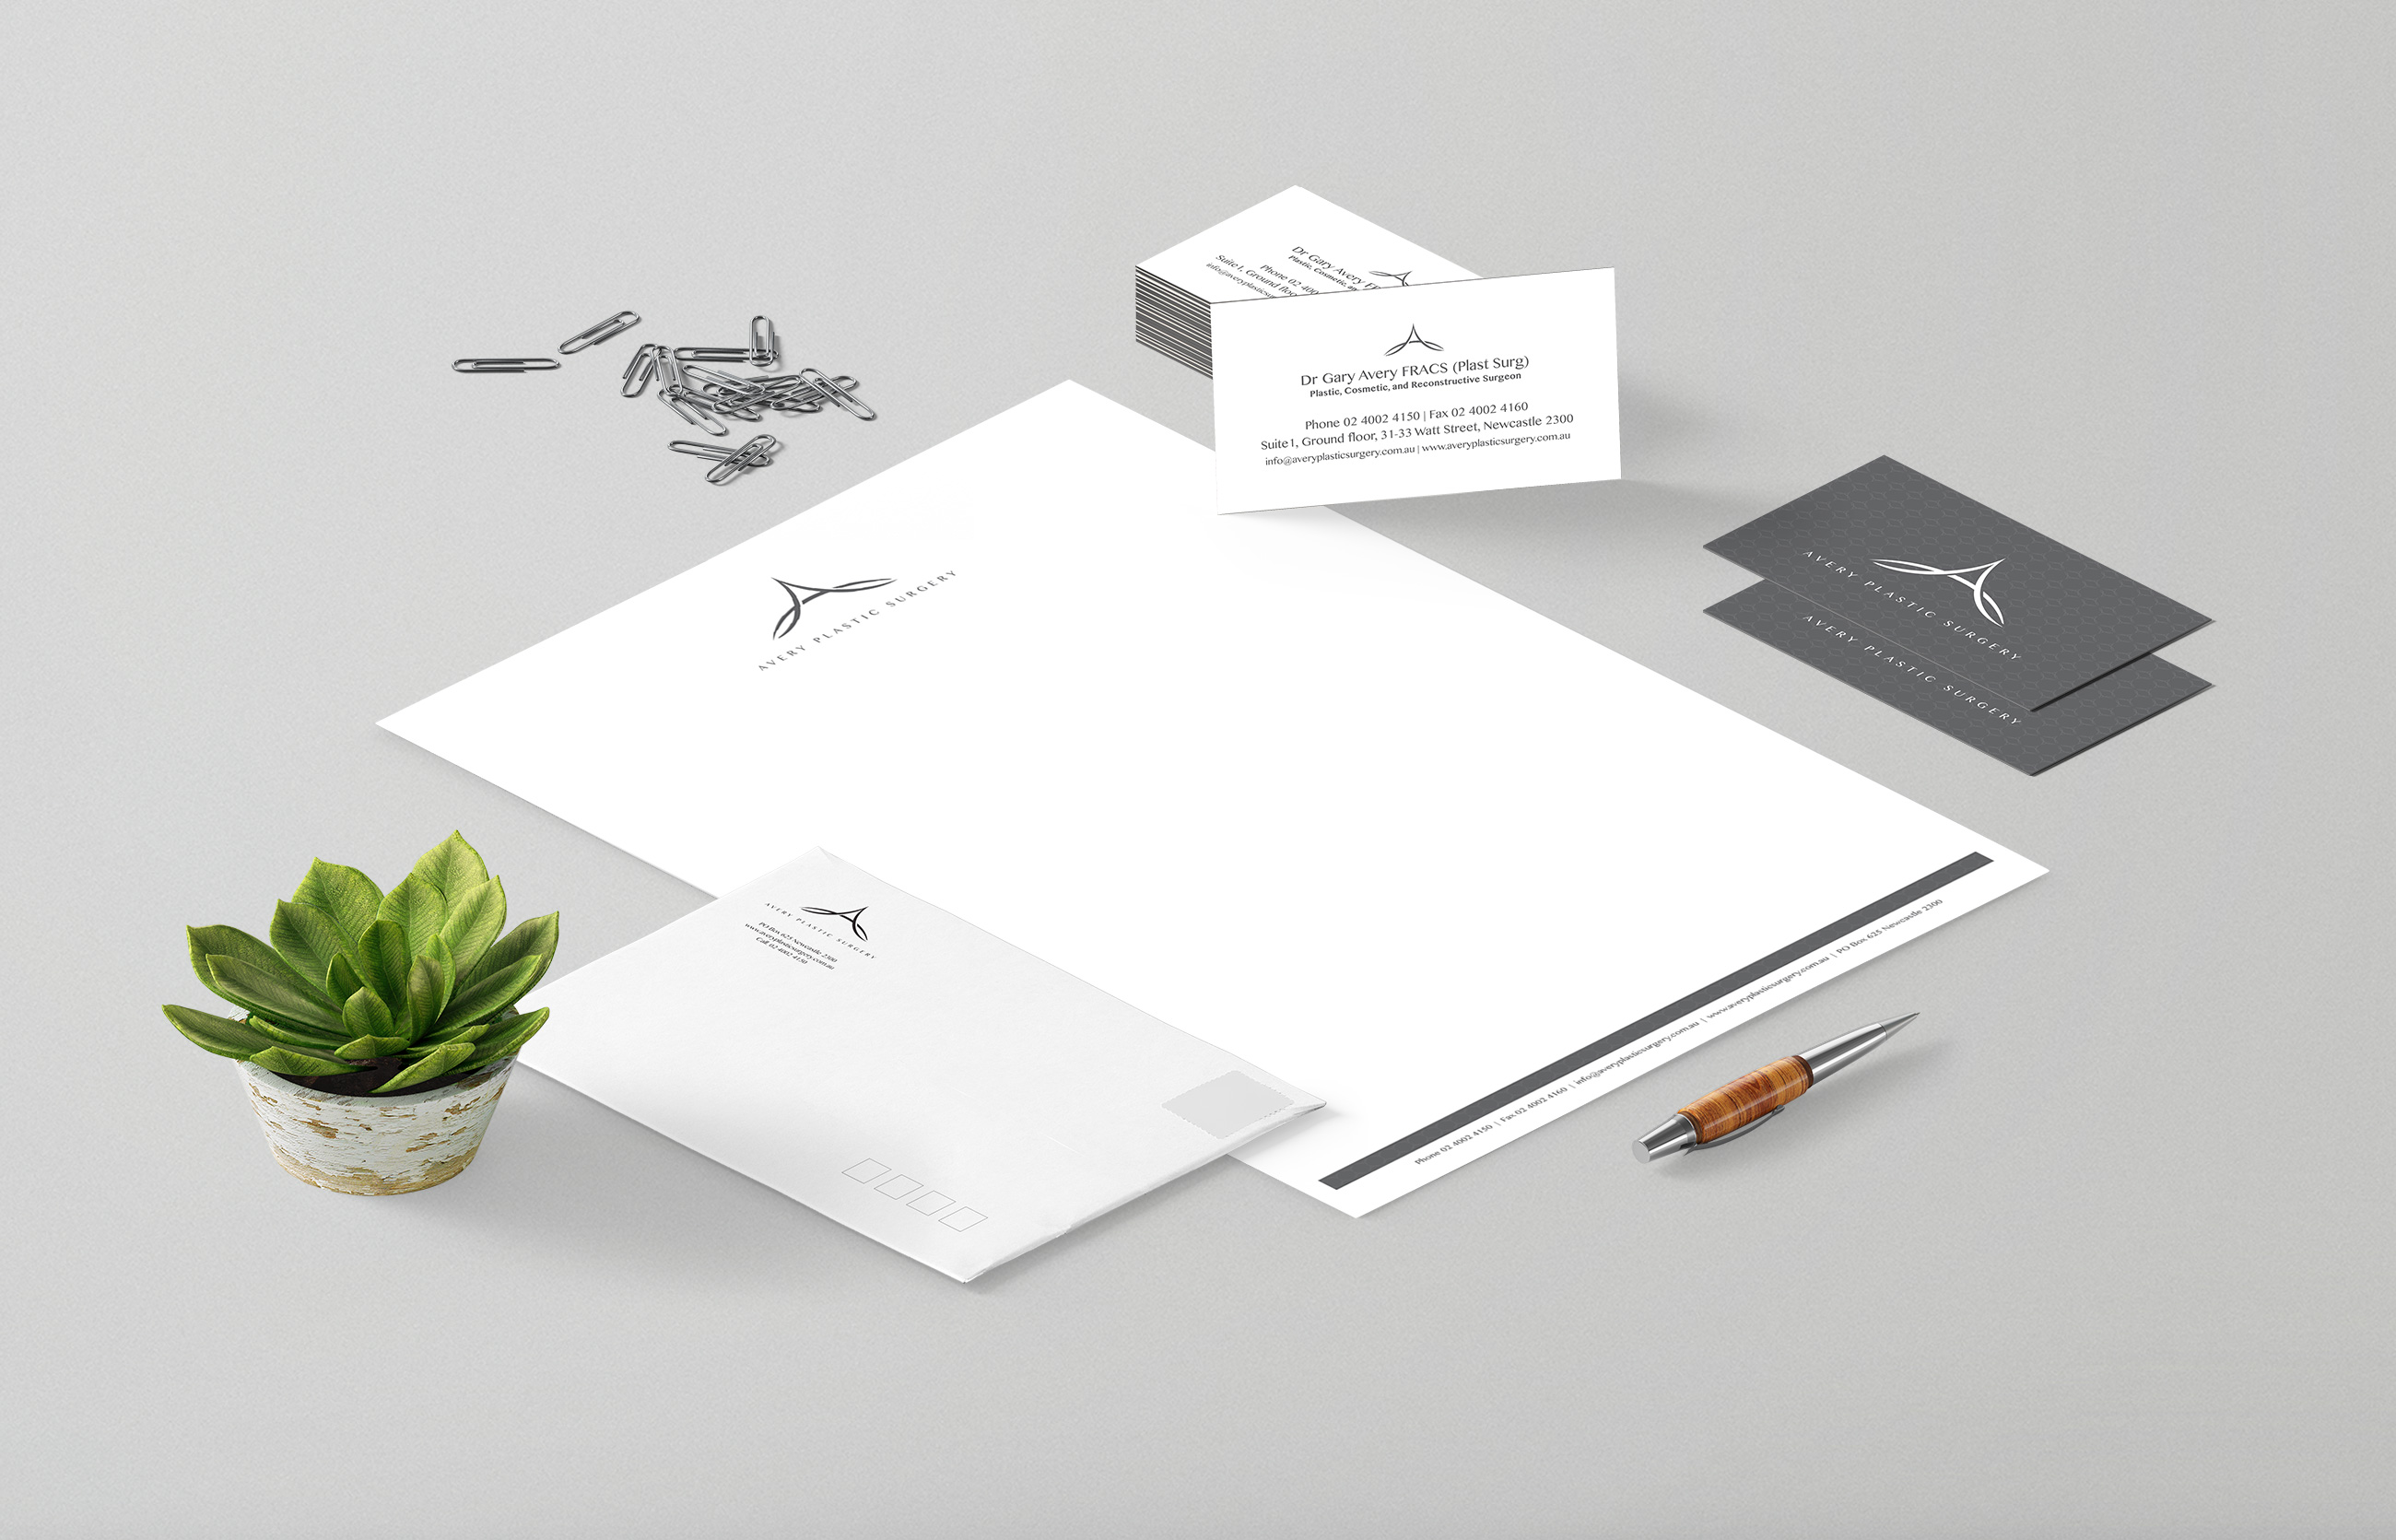 Avery Plastic Surgery Stationery